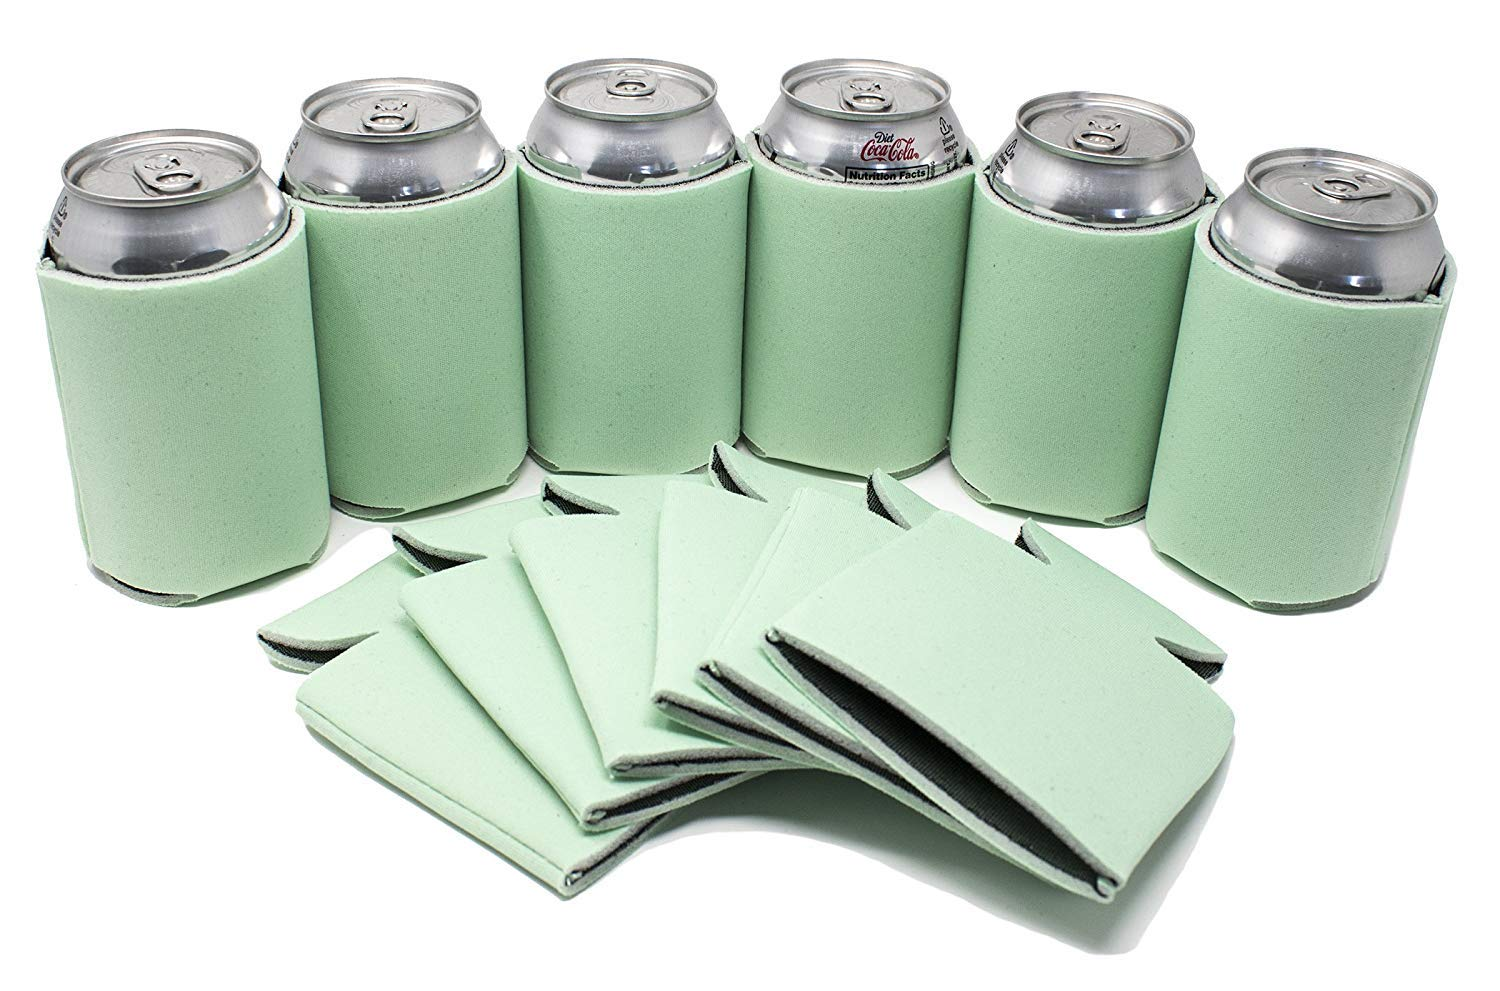 TahoeBay 12 Blank Beer Can Coolers, Plain Bulk Collapsible Soda Cover Coolies, DIY Personalized Sublimation Sleeves for Weddings, Bachelorette Parties, Funny HTV Party Favors (Mint, 12)